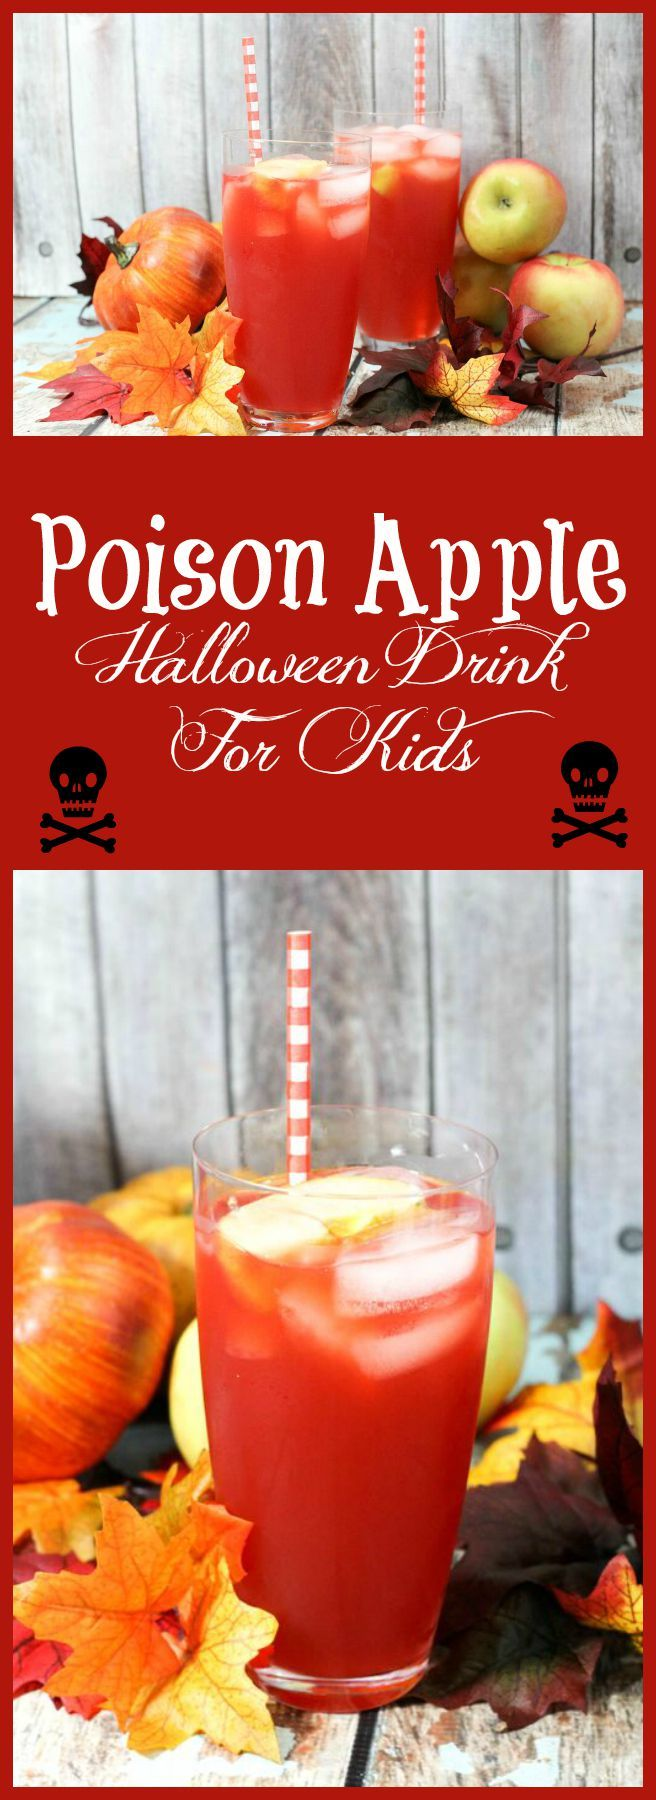 Check out this fun Poison Apple Halloween drink recipe for kids, along with a great recipe for making your own apple cider!